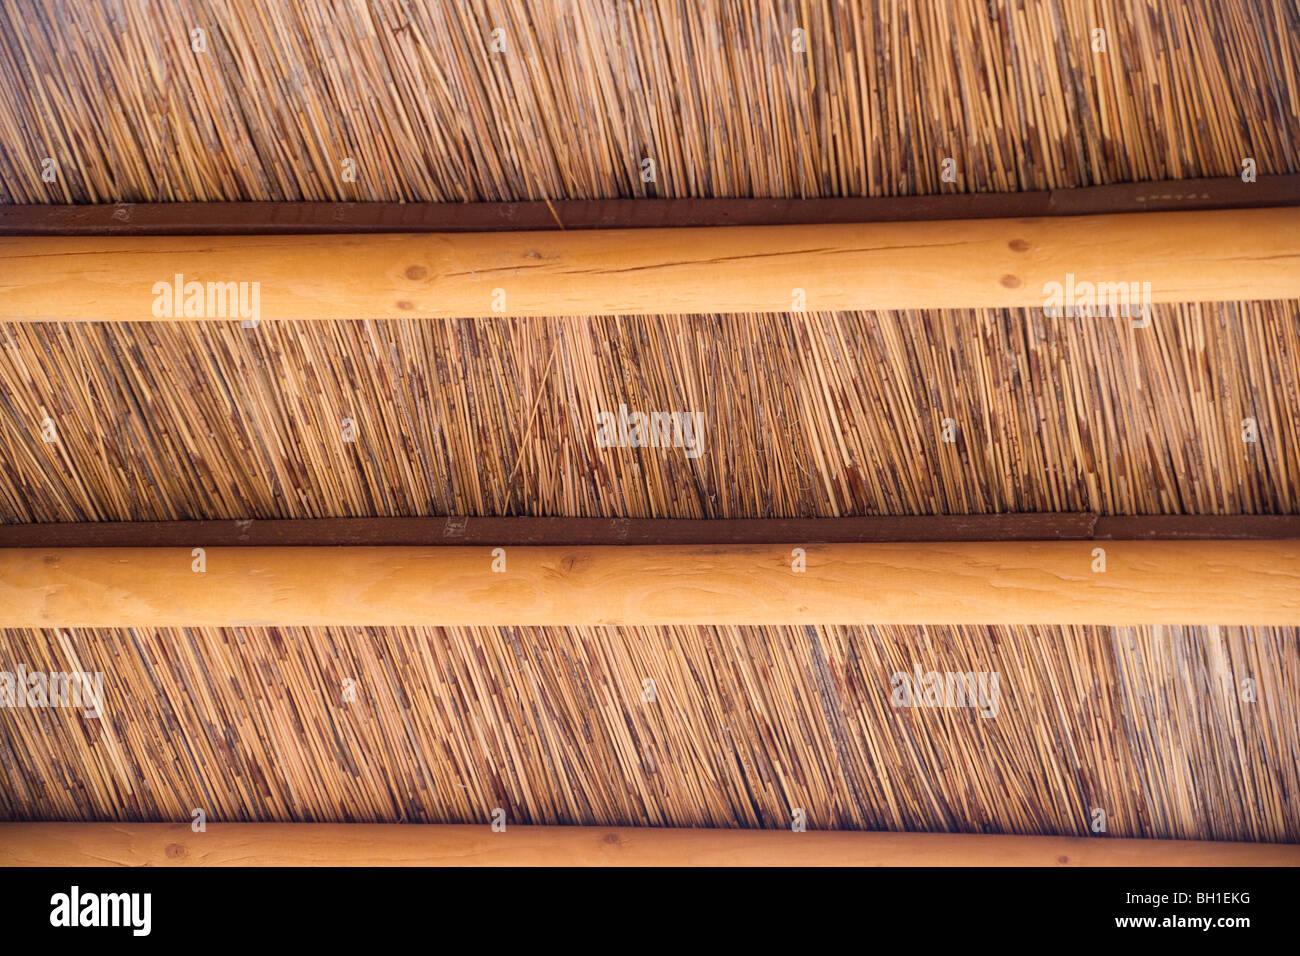 Interior Thatched Roof Of A Palapa Hut With Wooden Beams